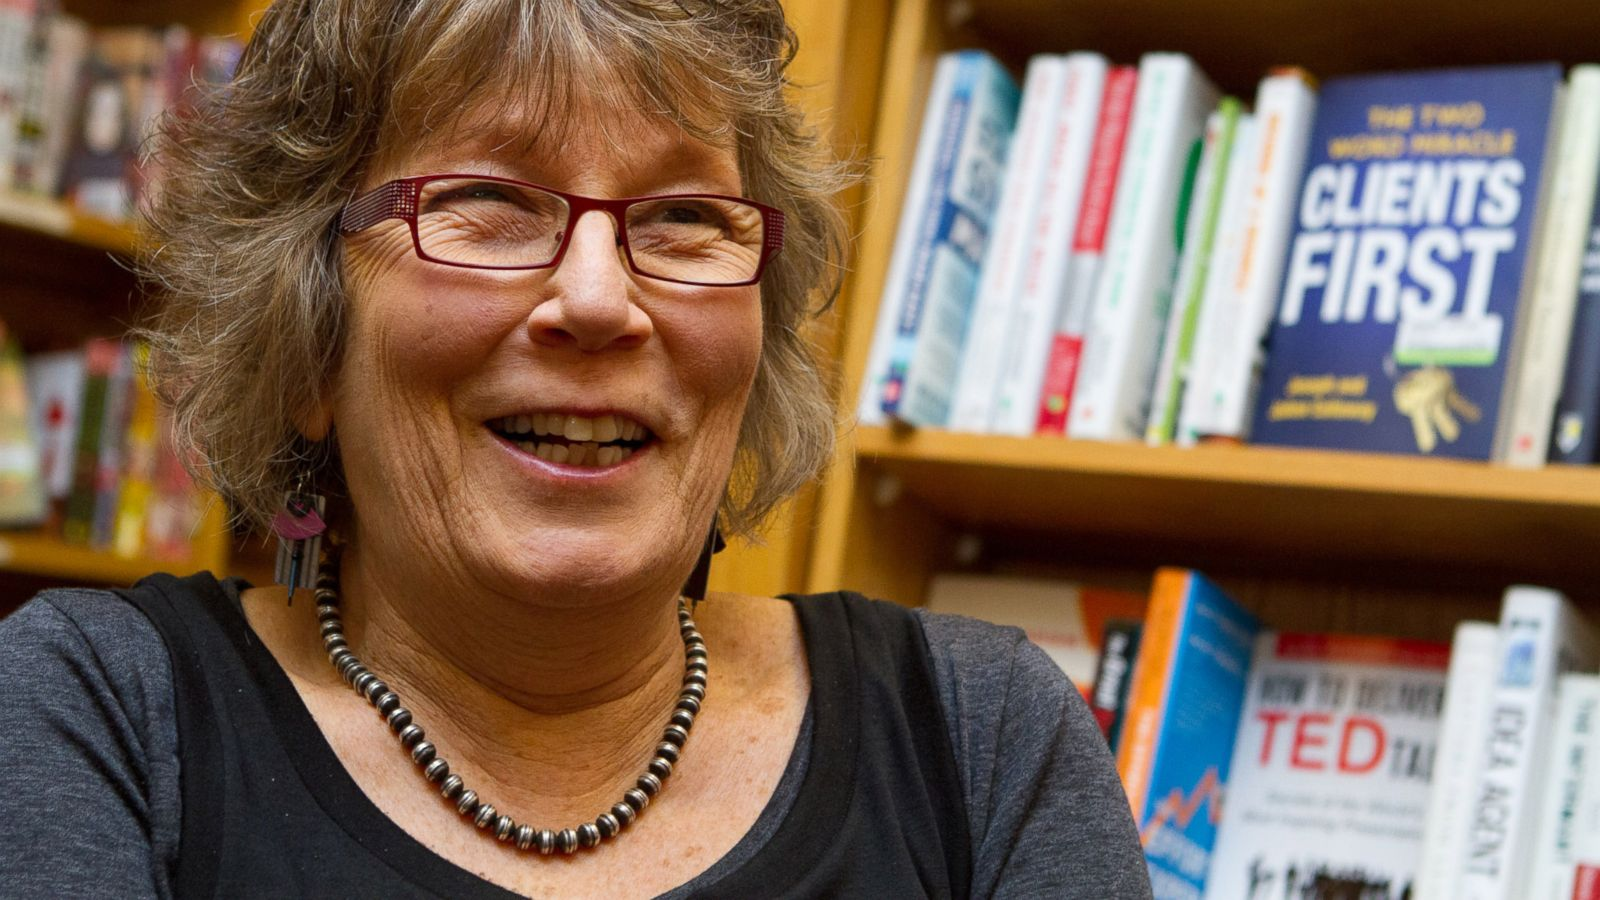 "This 2013 photo provided by Changing Hands Bookstore shows, owner Gayle Shanks, in the Changing Hands Bookstore in Tempe, Ariz. In 1974, Shanks was a 23-year-old idealist raised on the activism of the previous decade and anxious to make a difference herself. ""Books had changed my life and I assumed they could change other people's lives as well,"" says Shanks, whose Changing Hands Bookstore is now among the country's leading independent sellers. (Kristi Church/Changing Hands Bookstore via AP)"